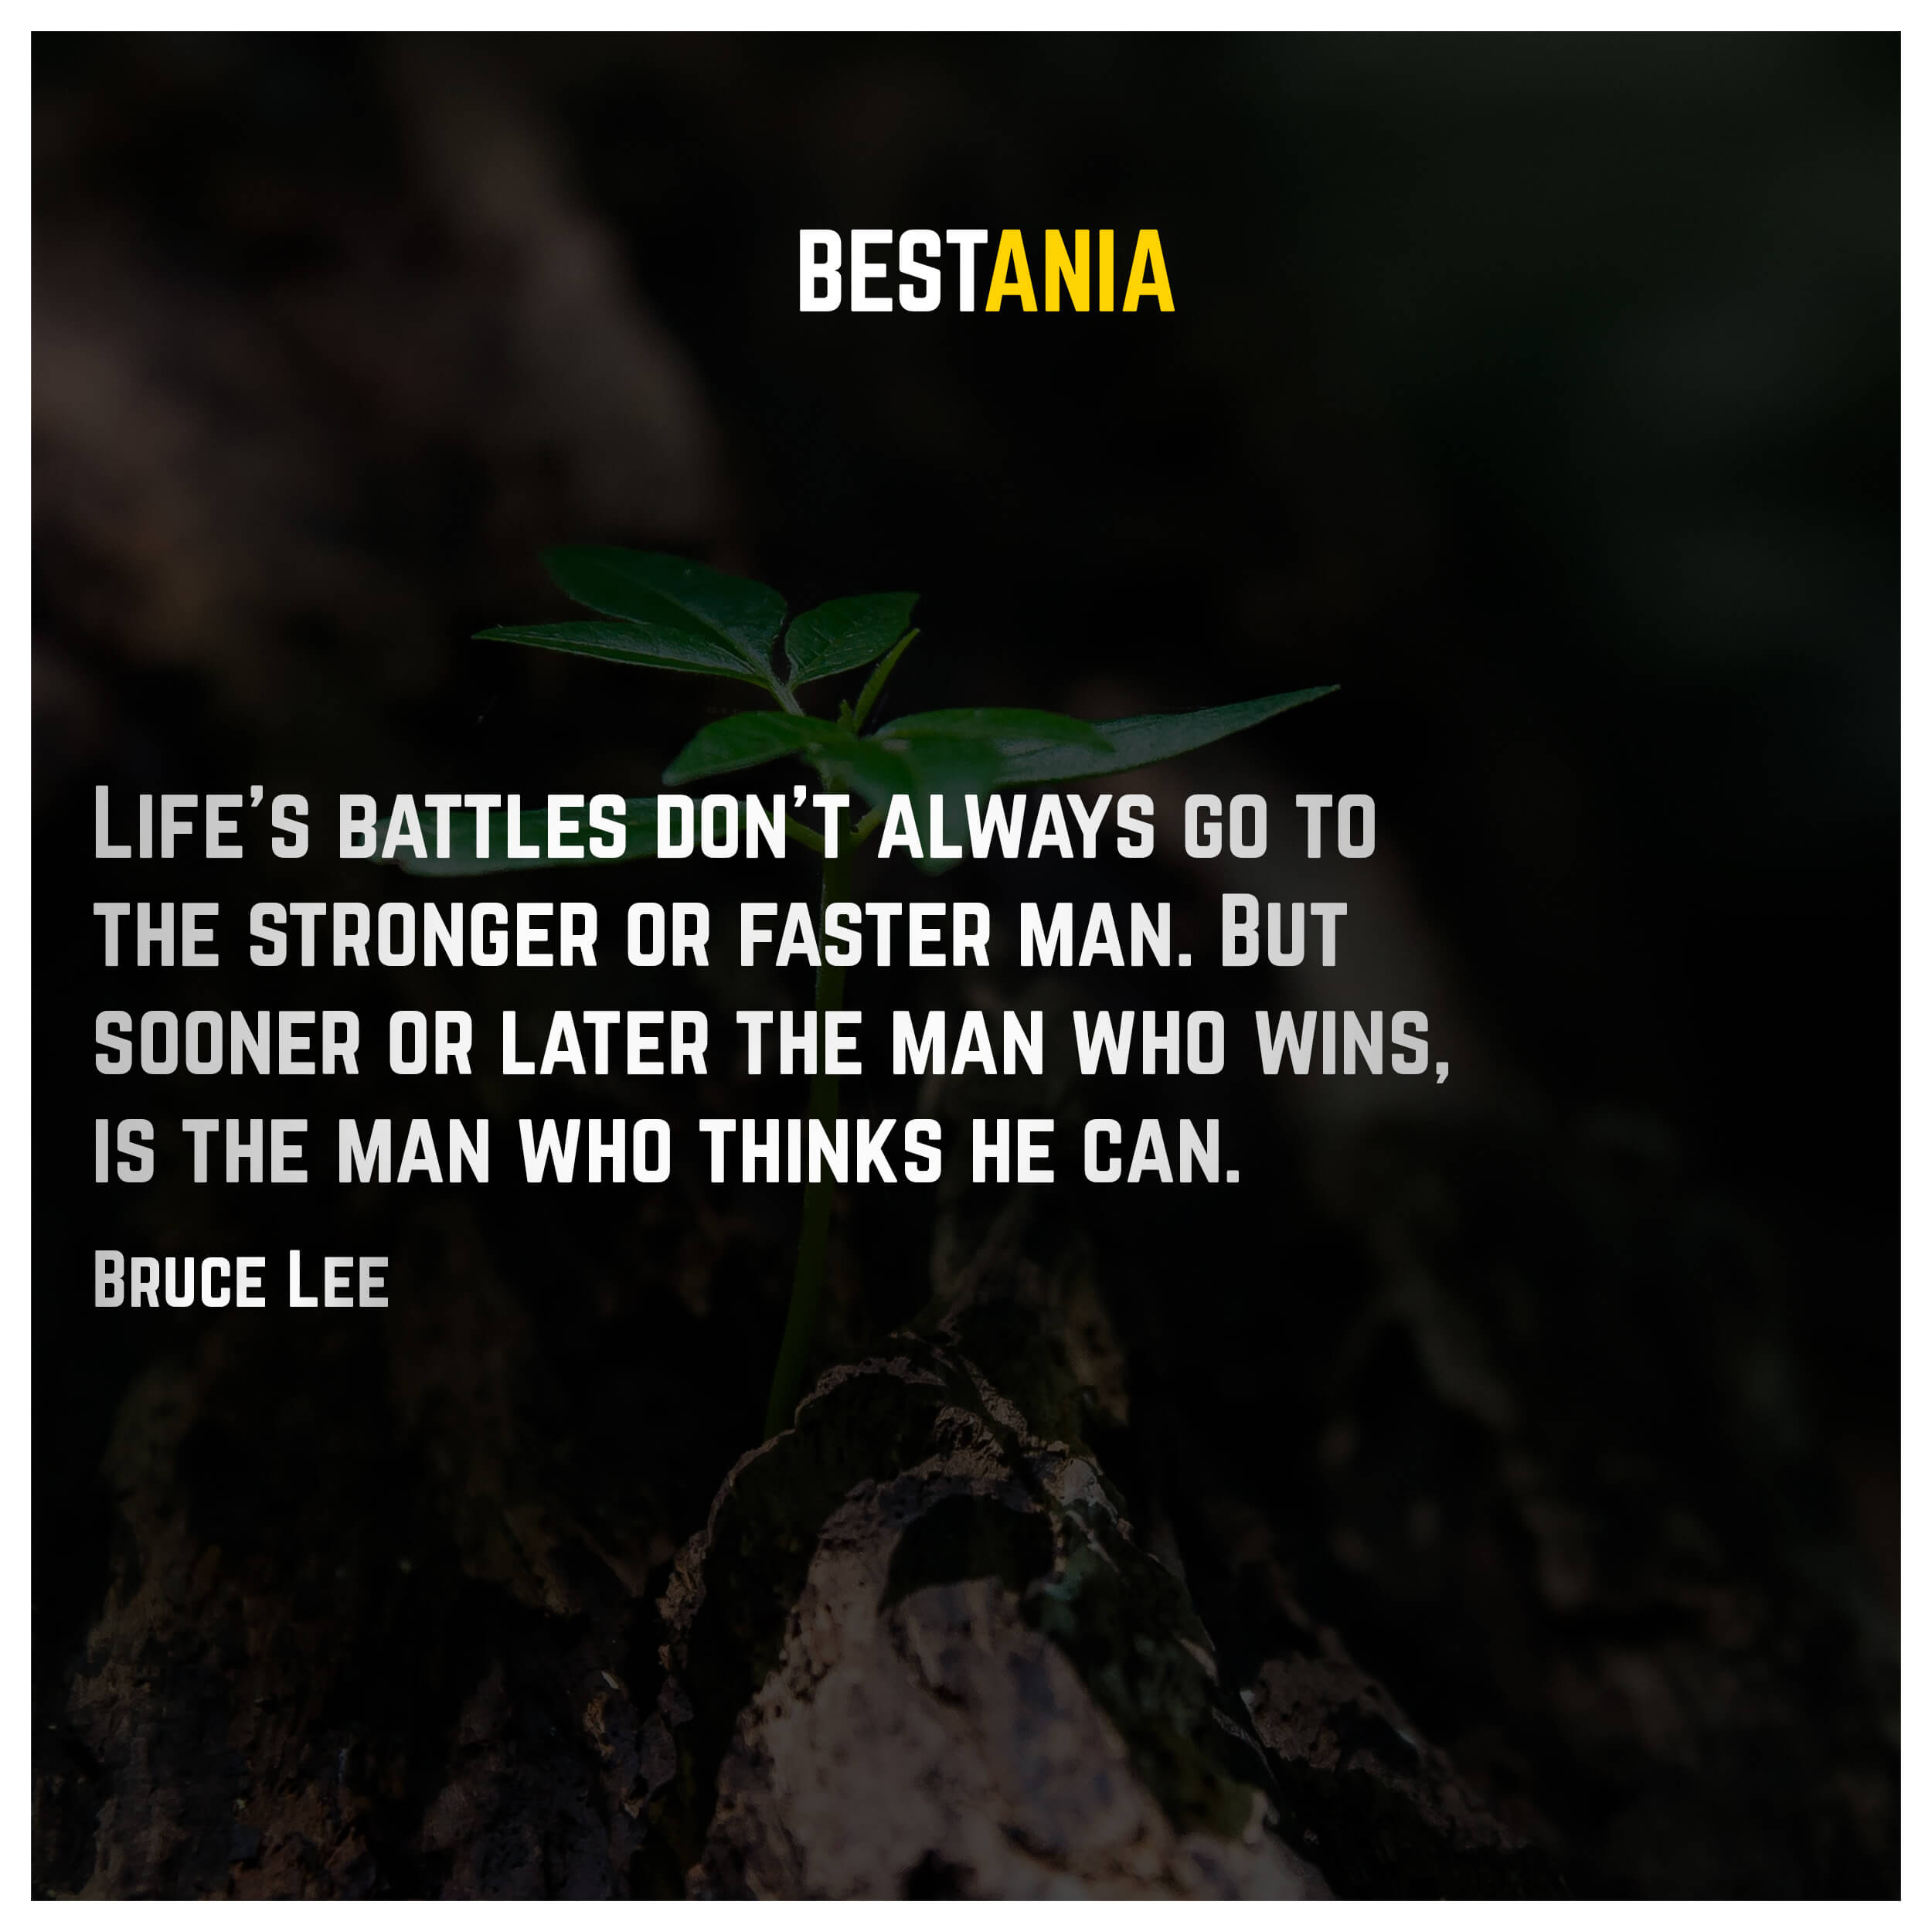 Life's battles don't always go to the stronger or faster man. But sooner or later the man who wins, is the man who thinks he can. Bruce Lee